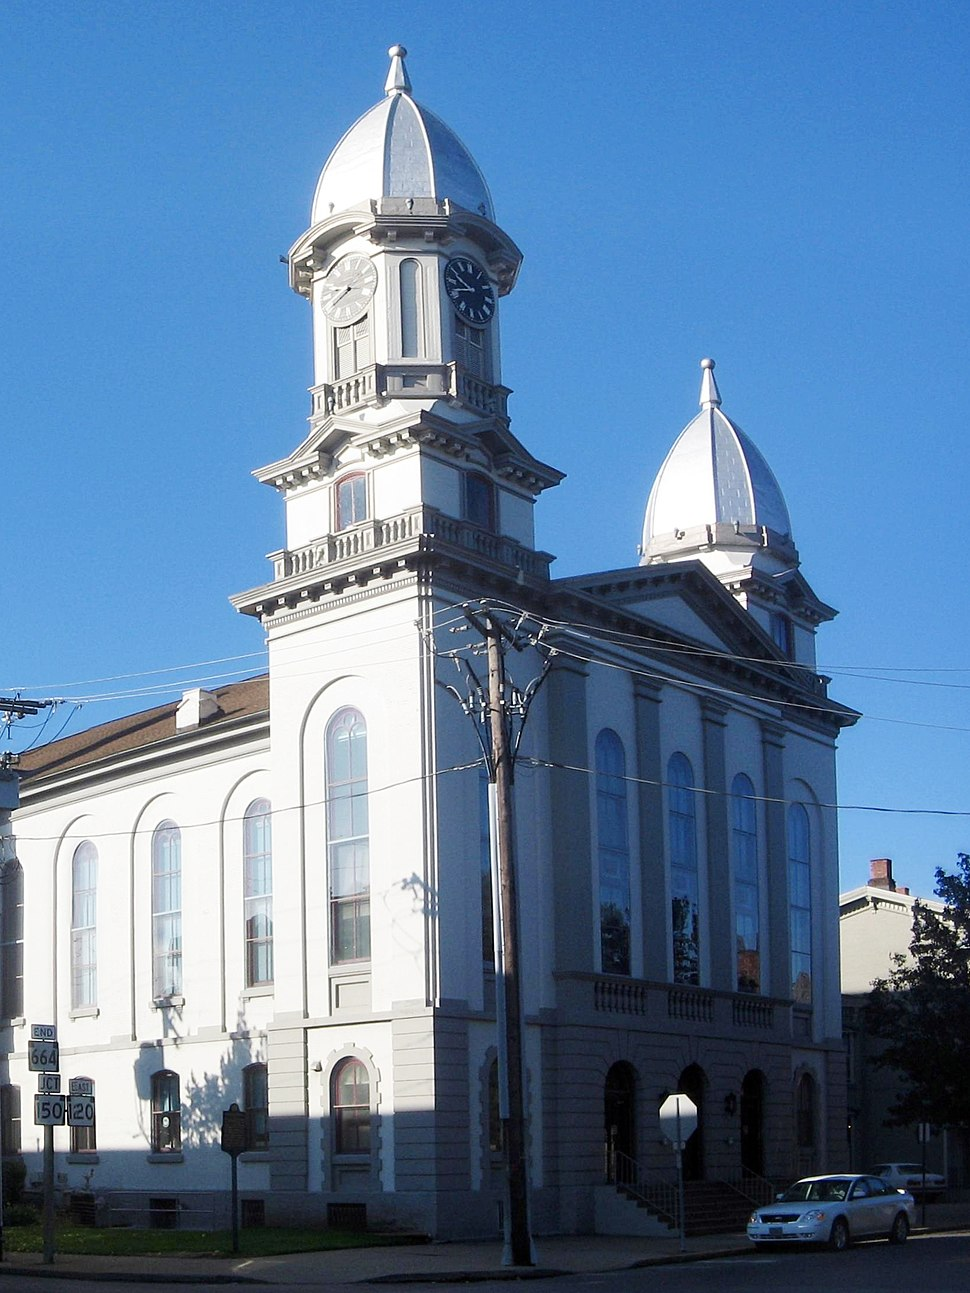 Clinton County Courthouse, Lock Haven (1869), Samuel Sloan and Addison Hutton, architects[1]